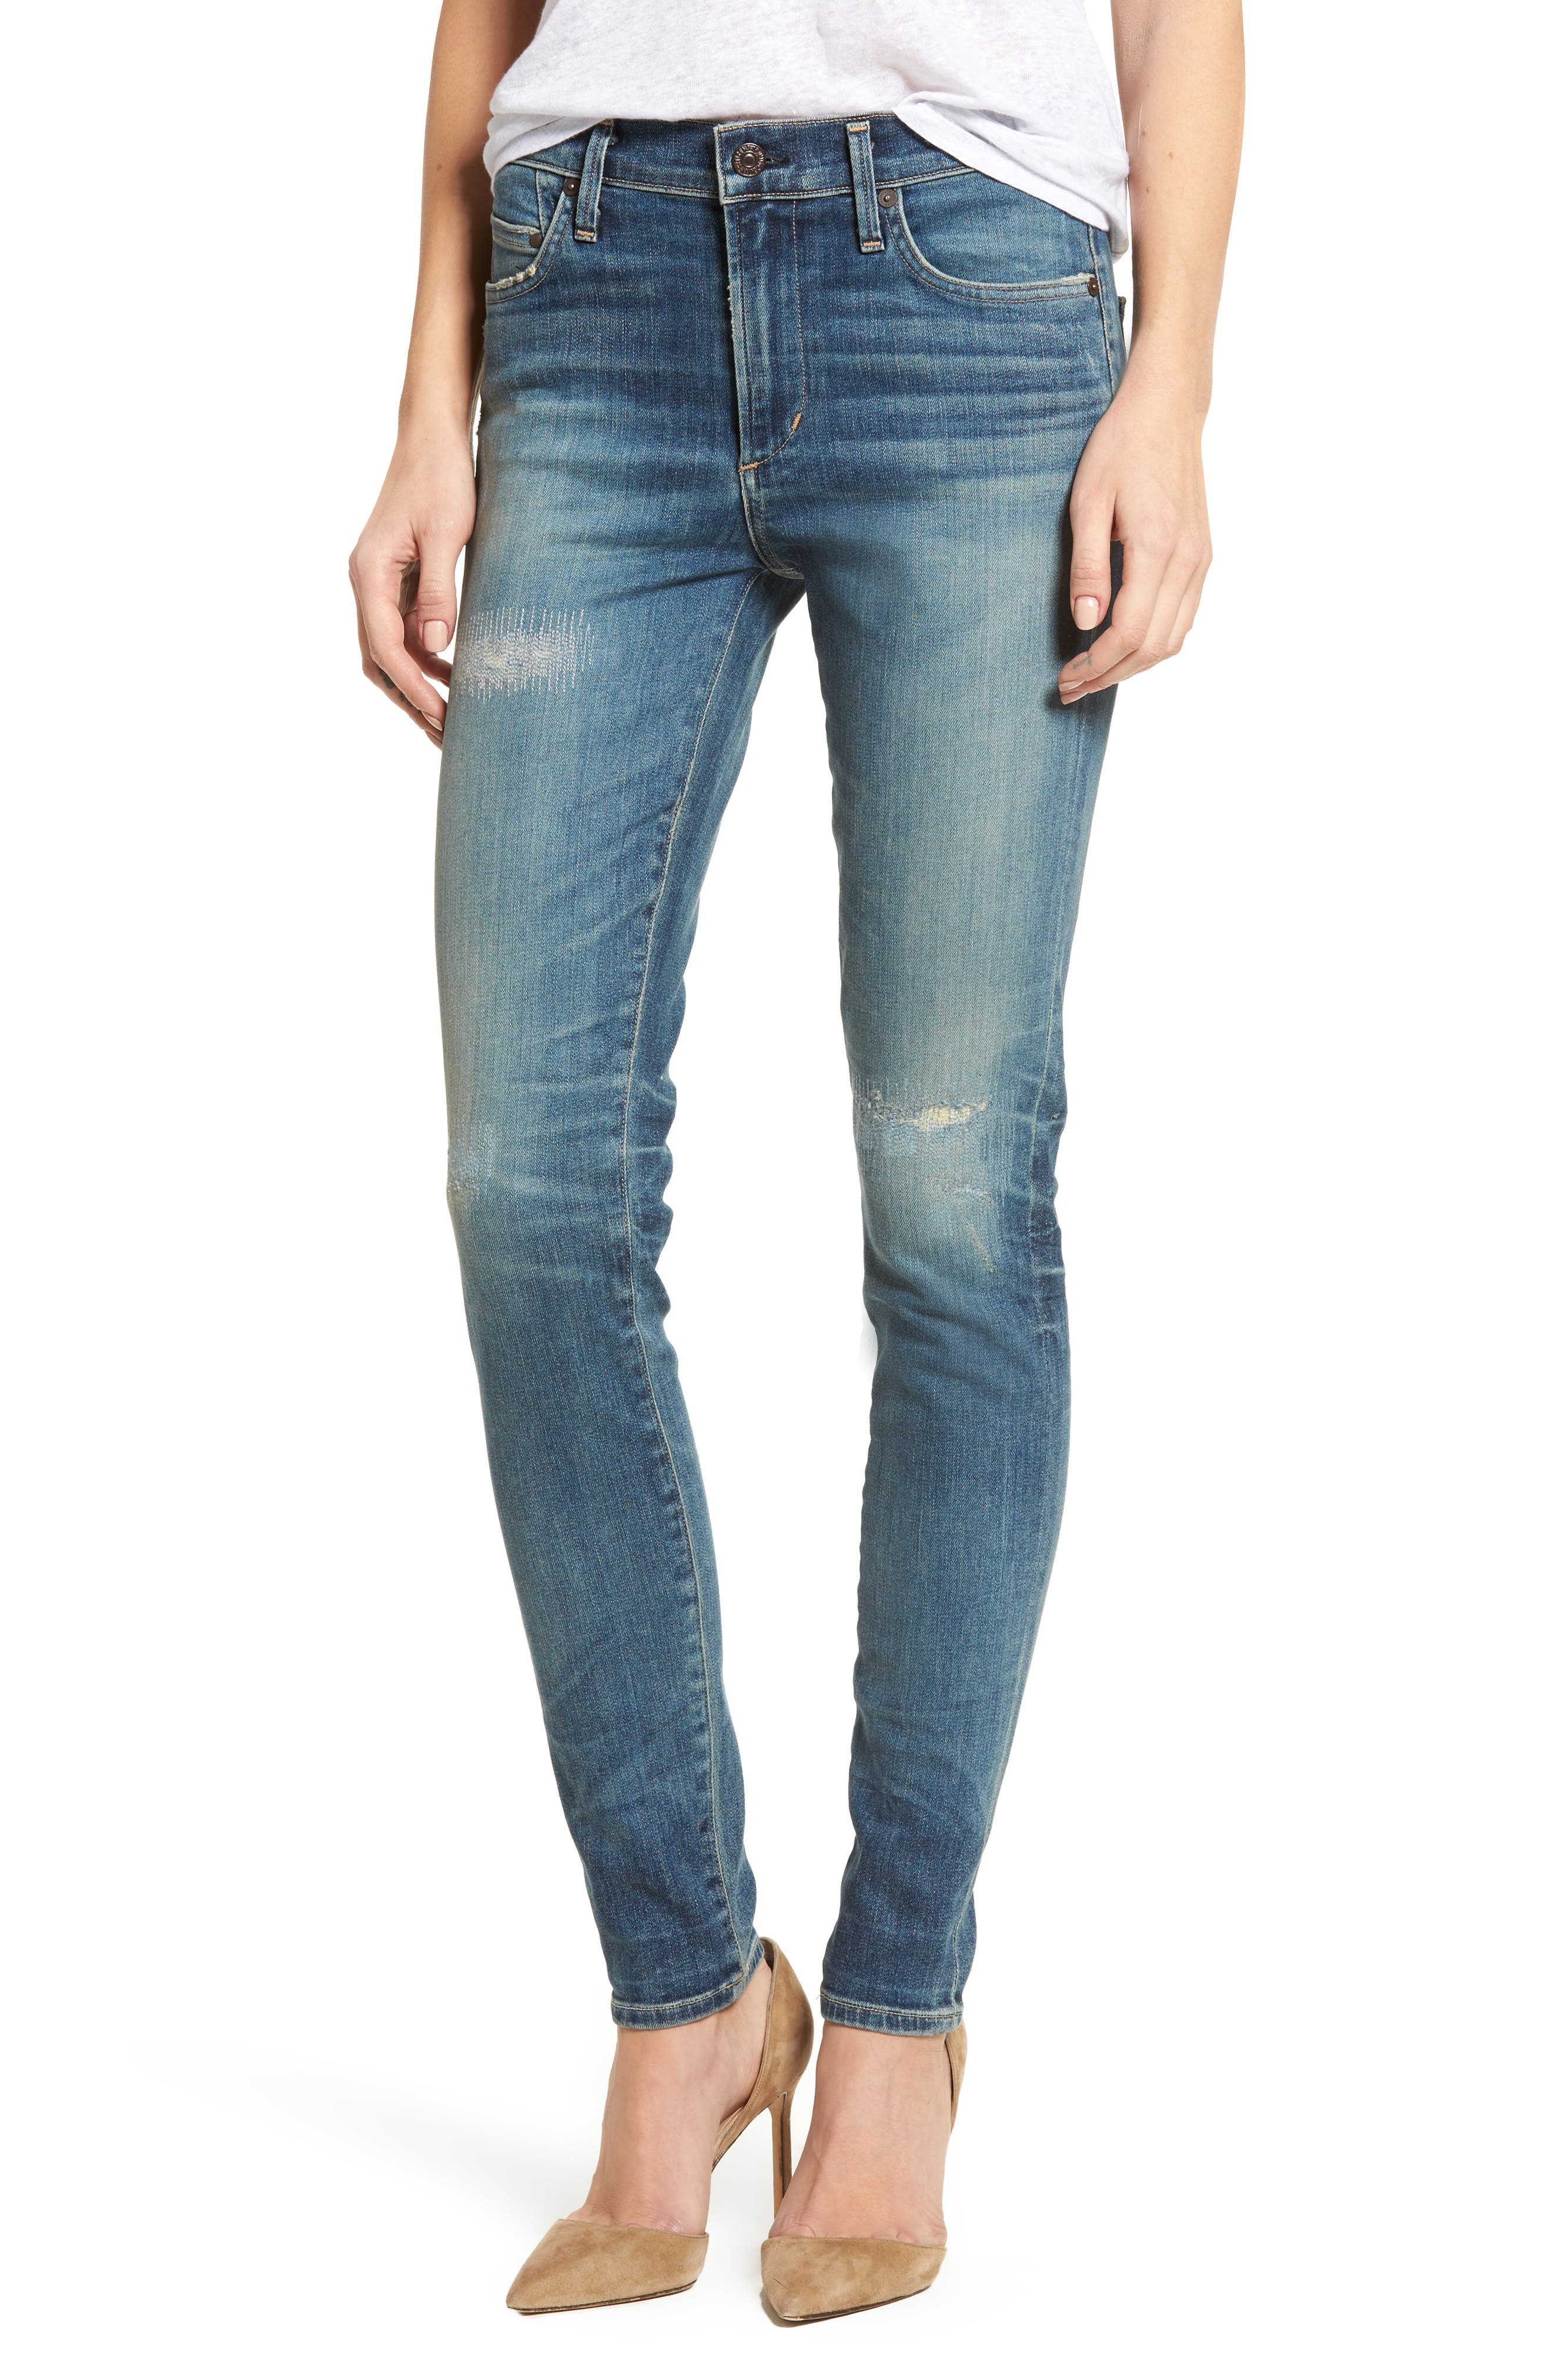 Alternate Image 1 Selected - Citizens of Humanity Rocket High Waist Skinny Jeans (Rocker)